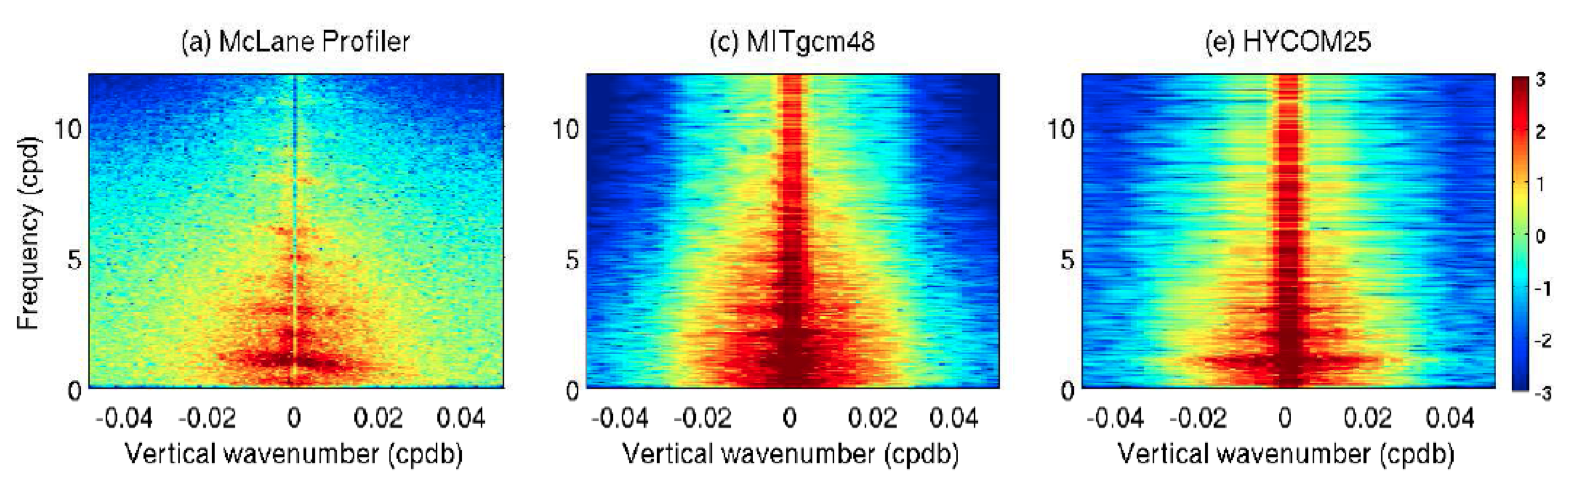 Frequency-vertical wavenumber spectra E(m,ω) of horizontal kinetic energy from McLane profiler observations (a), 1/48° MITgcm simulation (b), and 1/25° HYCOM simulation, at location 121.0°E, 19.3°N